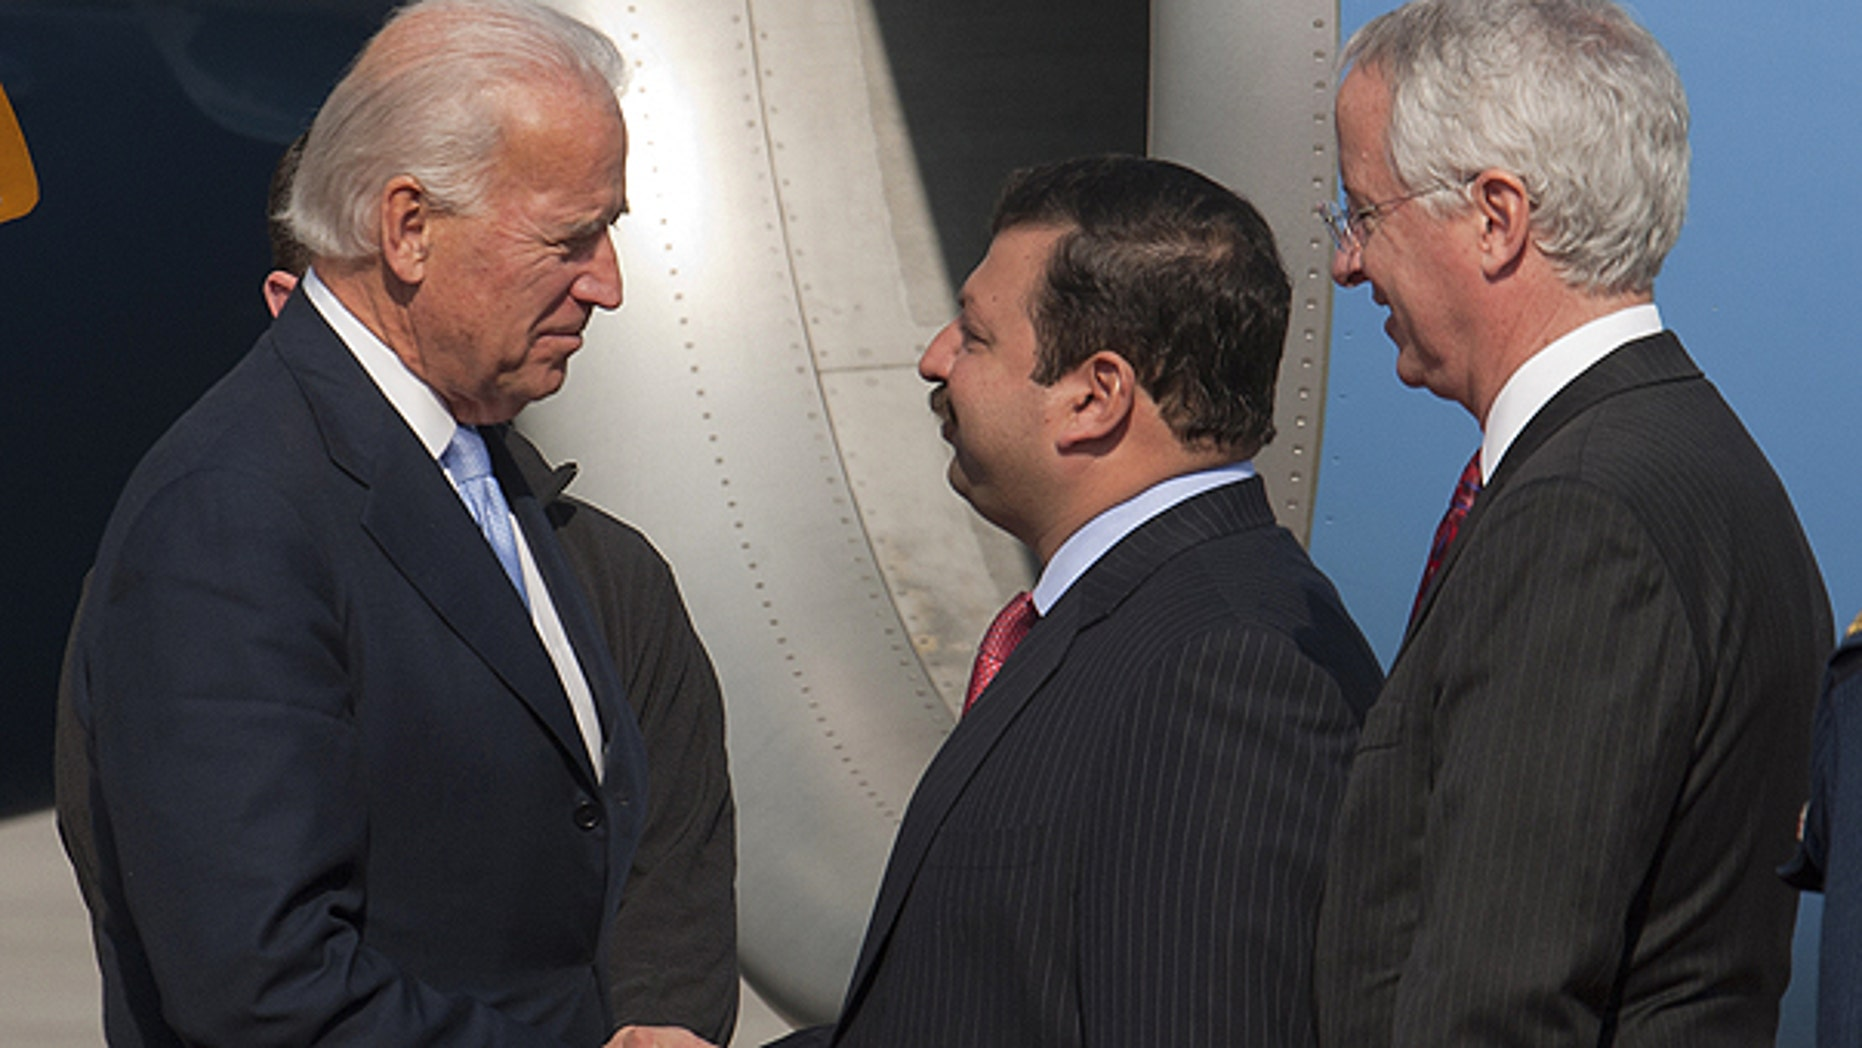 Jan. 12: U.S. Vice President Joe Biden, left, is welcomed by Pakistani Minister of State for Foreign Affairs Nawabzada Malik Amad Khan and U.S. Ambassador to Pakistan Cameron Munter, right, upon his arrival at airforce base in Rawalpidi, Pakistan.